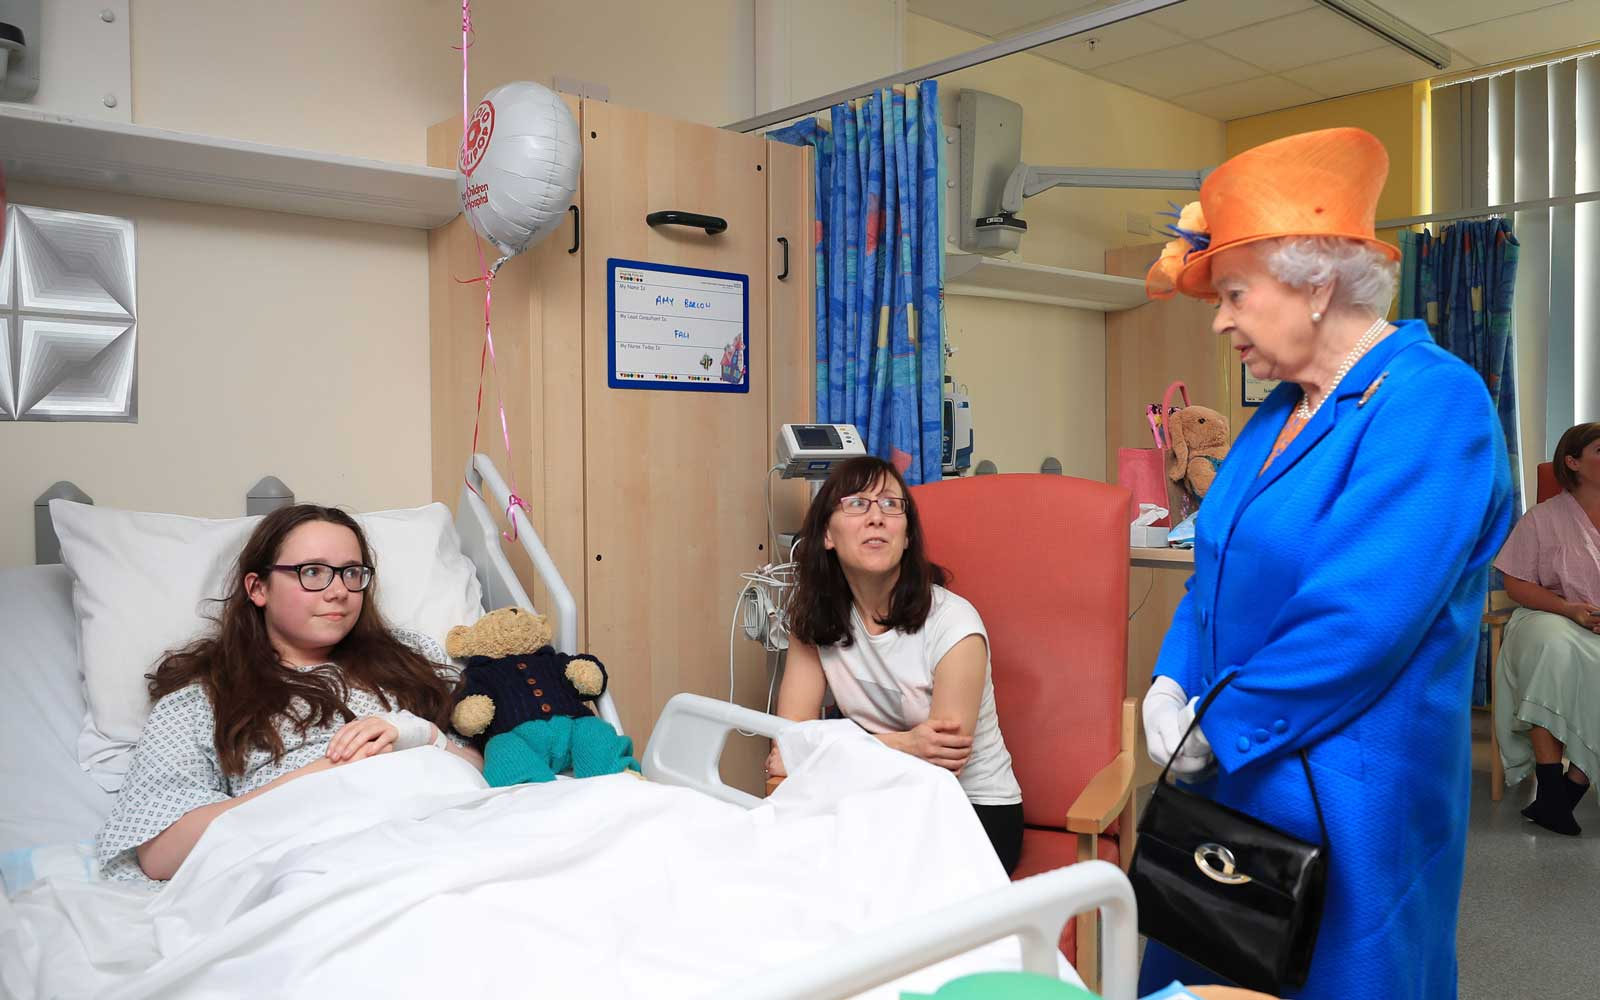 MANCHESTER, ENGLAND - MAY 25: Queen Elizabeth II speaks to Amy Barlow, 12, from Rawtenstall, Lancashire, and her mother, Kathy during a visit to the Royal Manchester Children's Hospital to meet victims of the terror attack on May 25, 2017